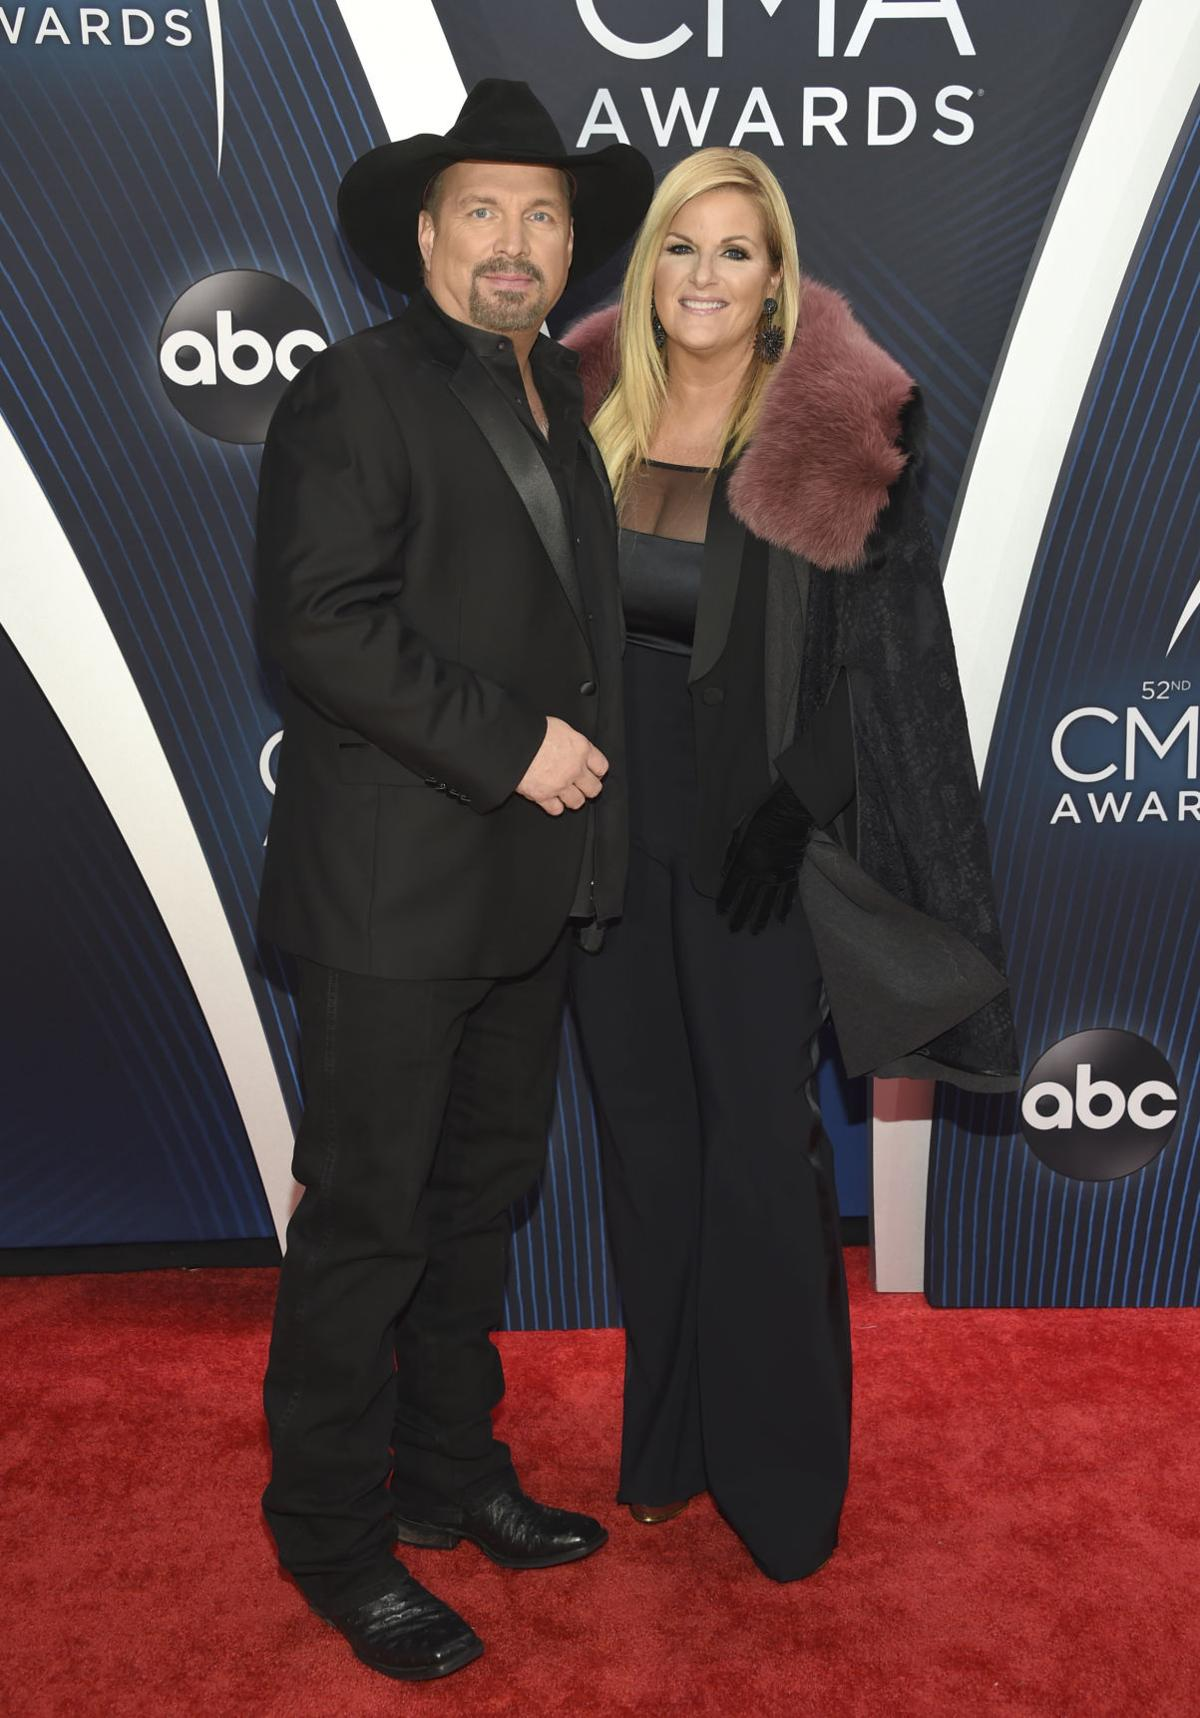 52nd Annual CMA Awards - Arrivals